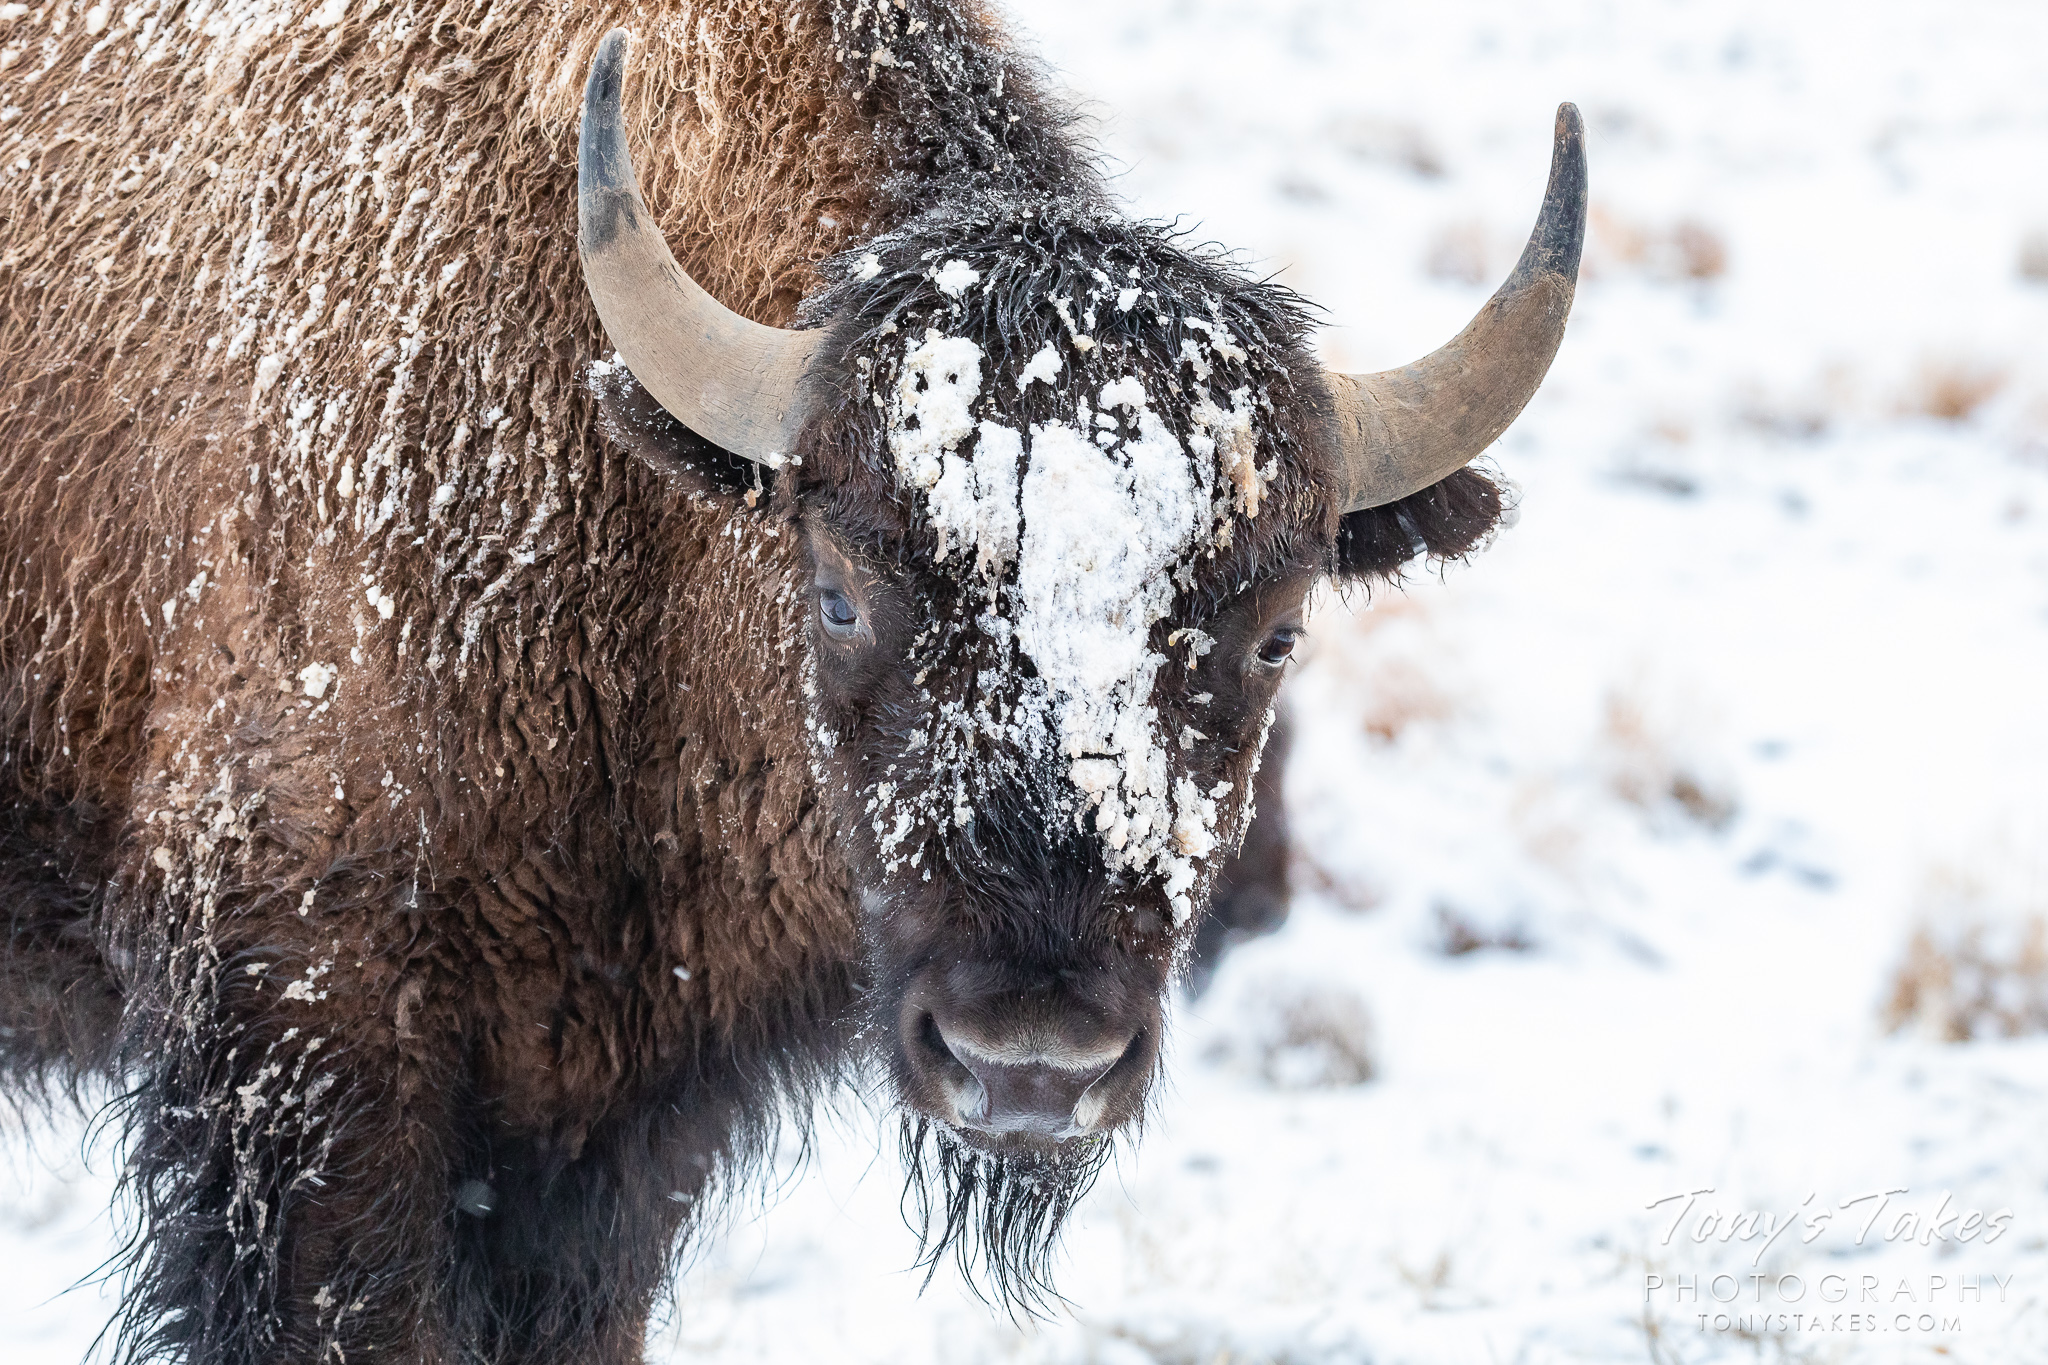 A bison cow is covered in snow following a snowstorm on the Colorado plains. (© Tony's Takes)